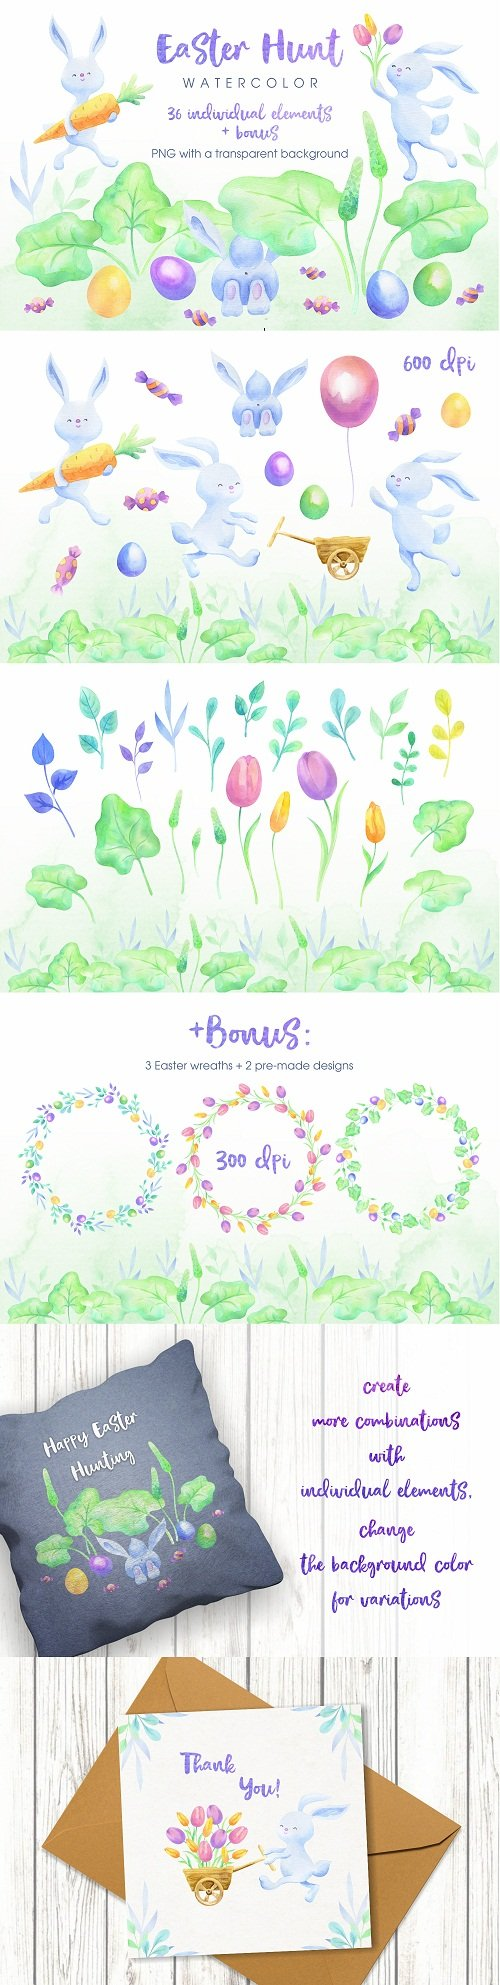 Easter hunt. Watercolor bunnies, flowers and eggs - 216815